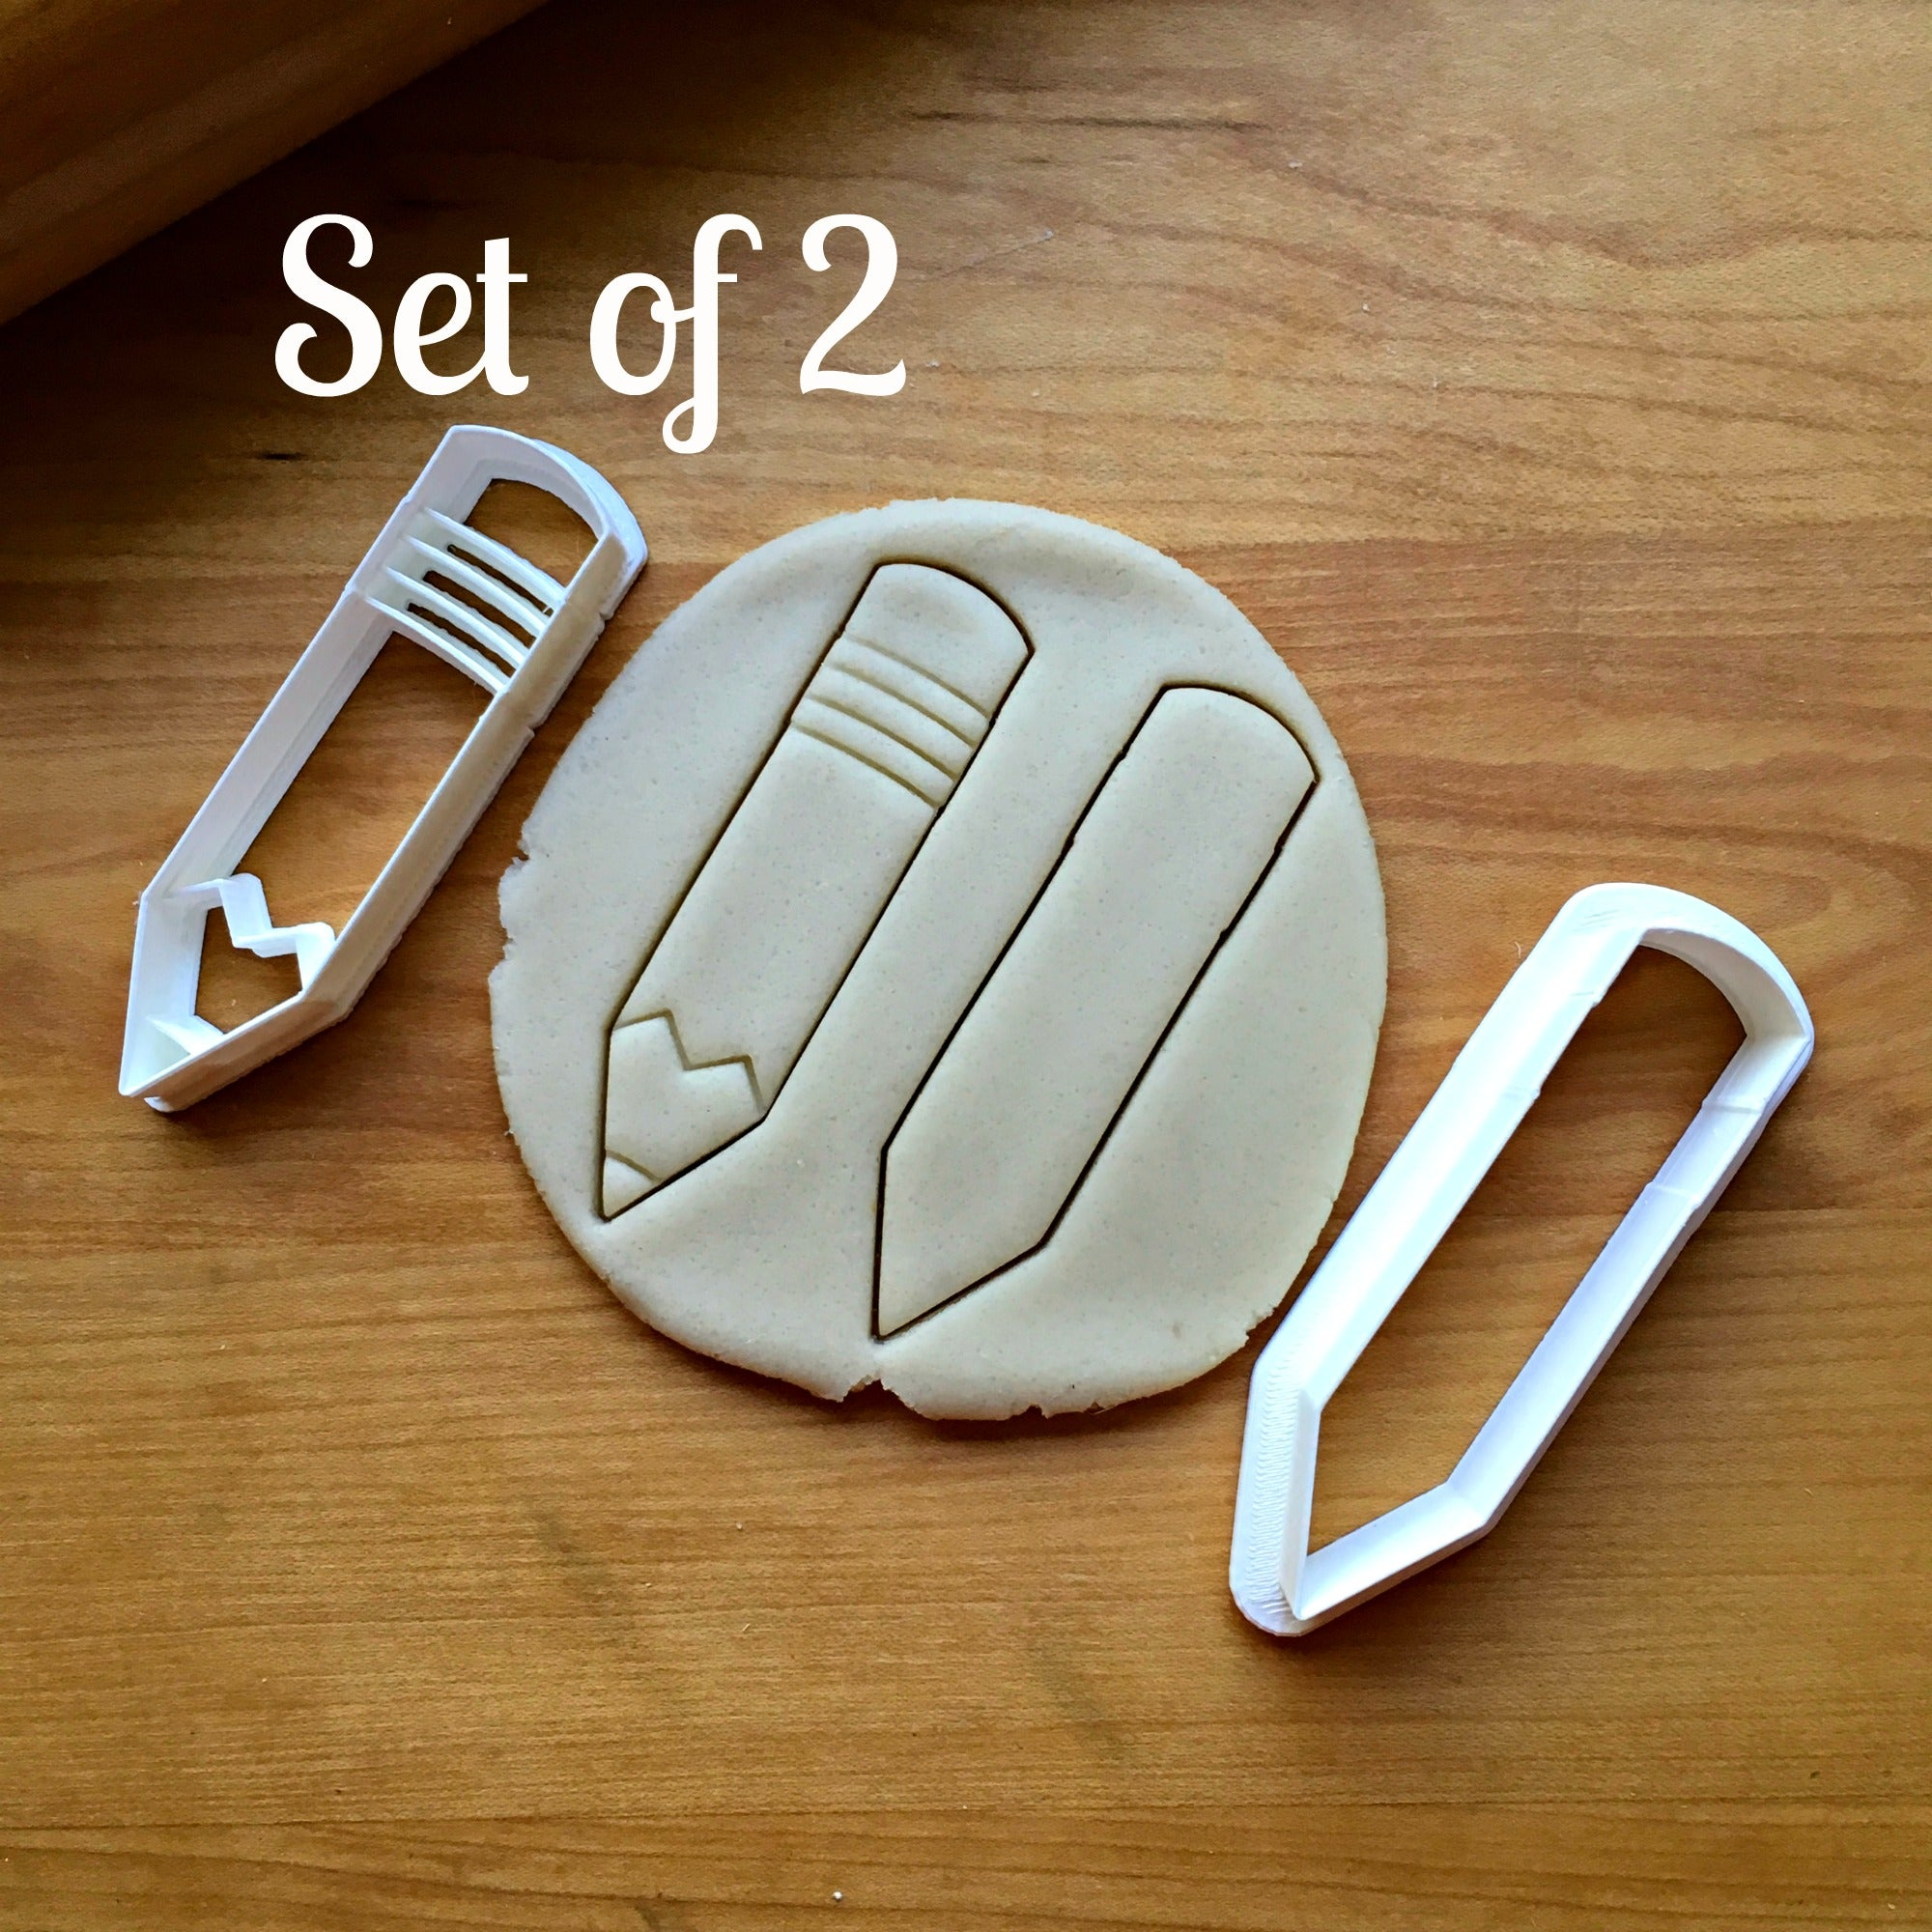 Set of 2 Skinny Pencil Cookie Cutters/Dishwasher Safe